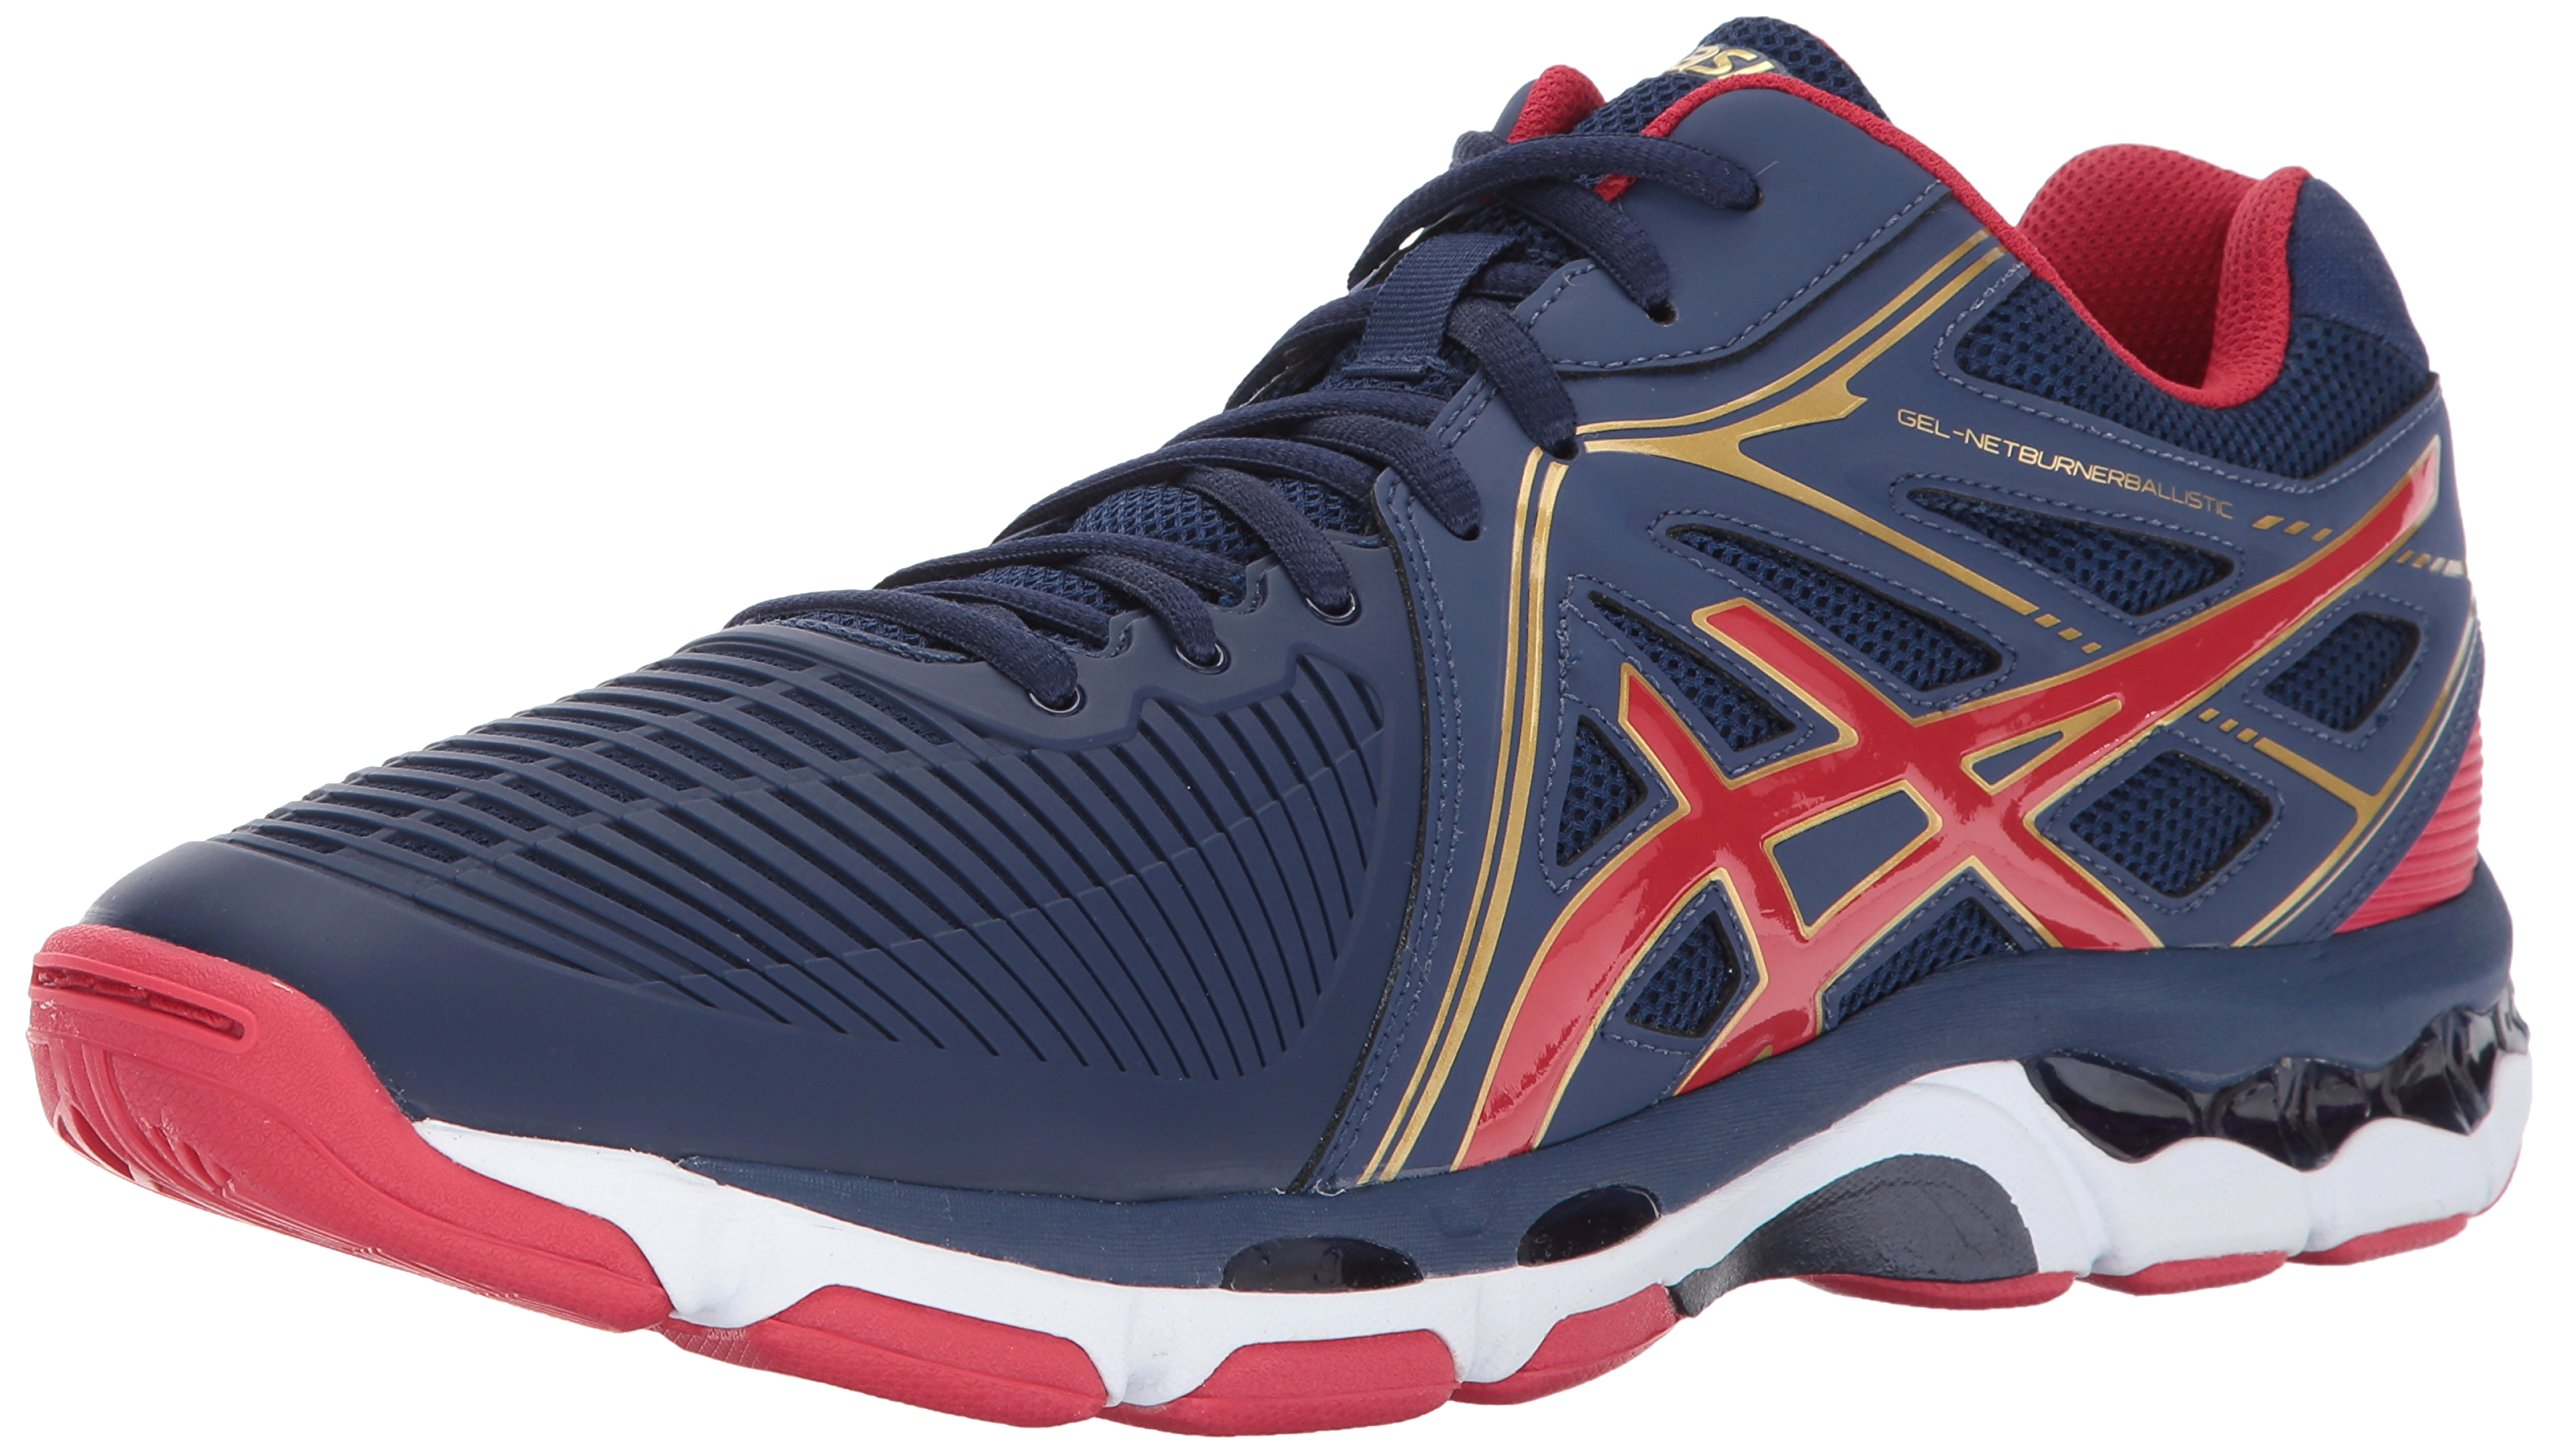 ASICS Men's Gel-Netburner Ballistic MT Volleyball Shoe, Indigo Blue/Prime Red/Rich Gold, 6 Medium US by ASICS